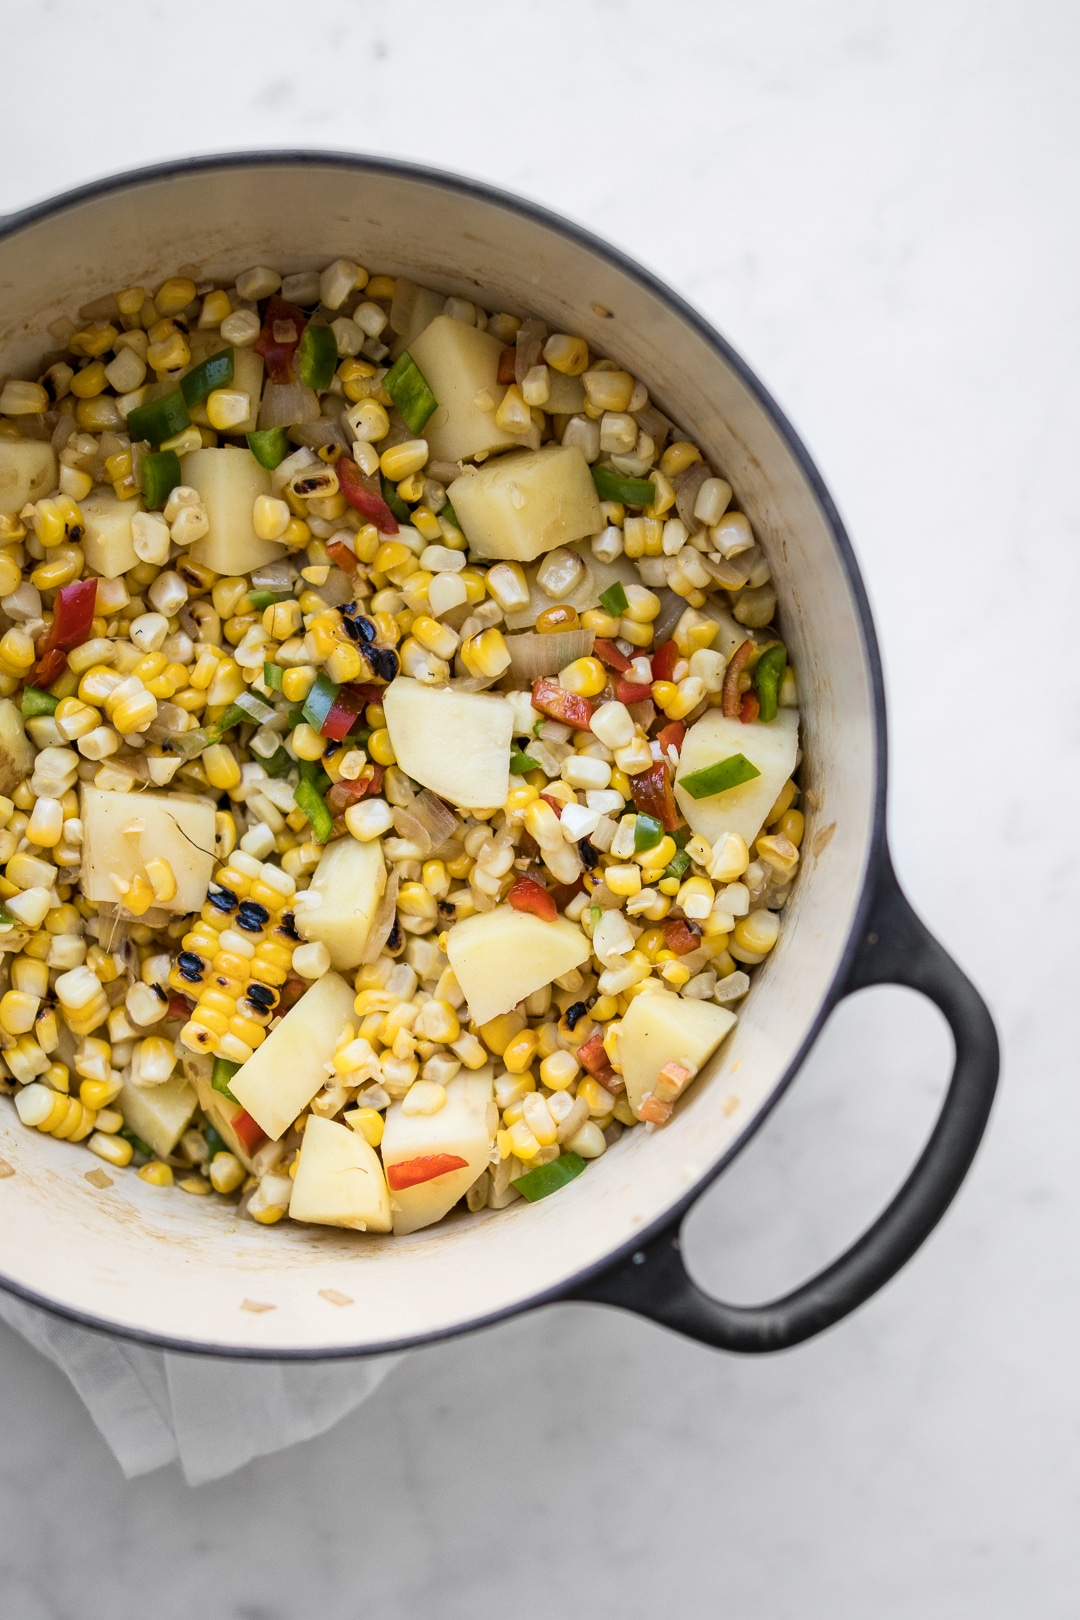 Corn, potatoes, and vegetables cooking in a dutch oven